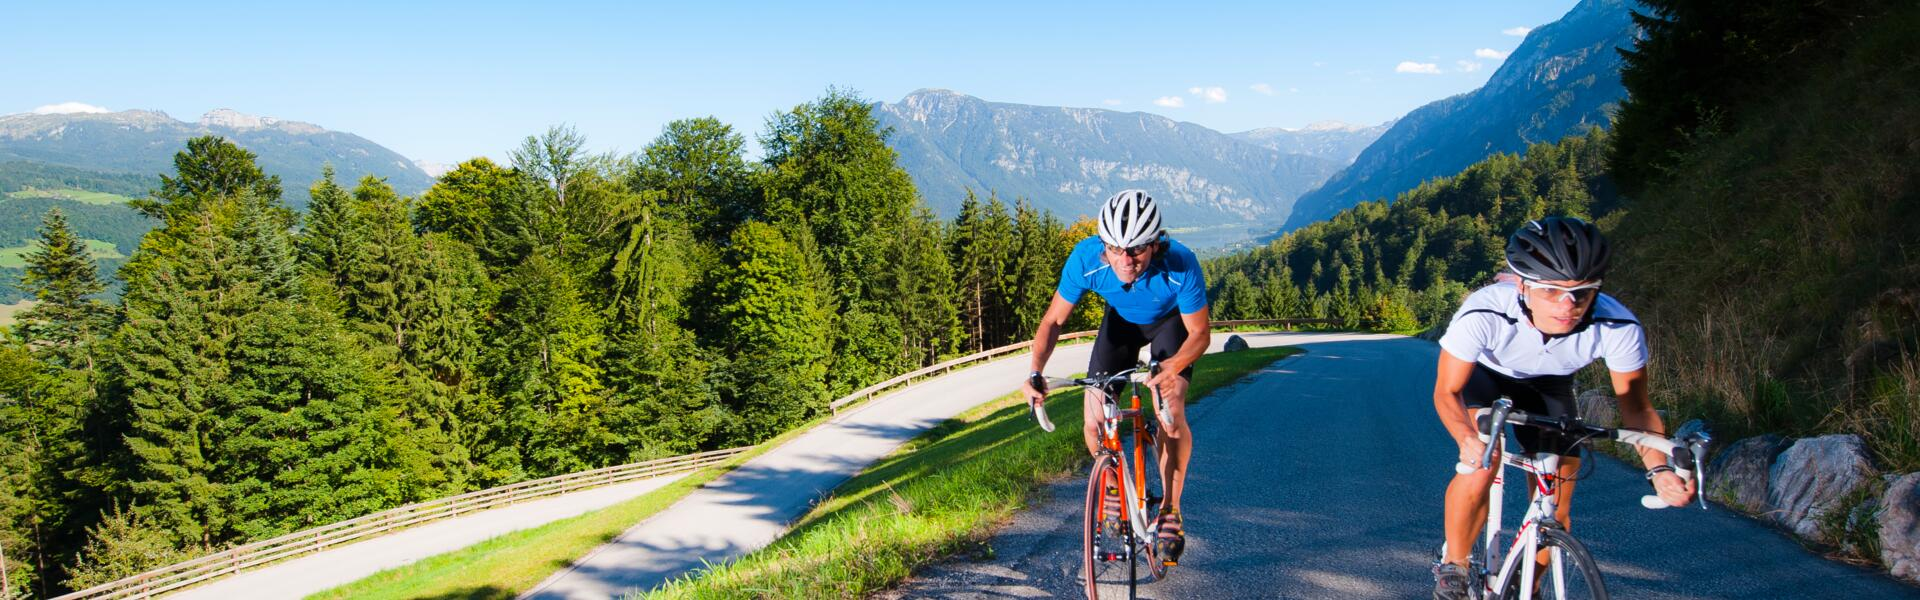 road bike tour holiday austria